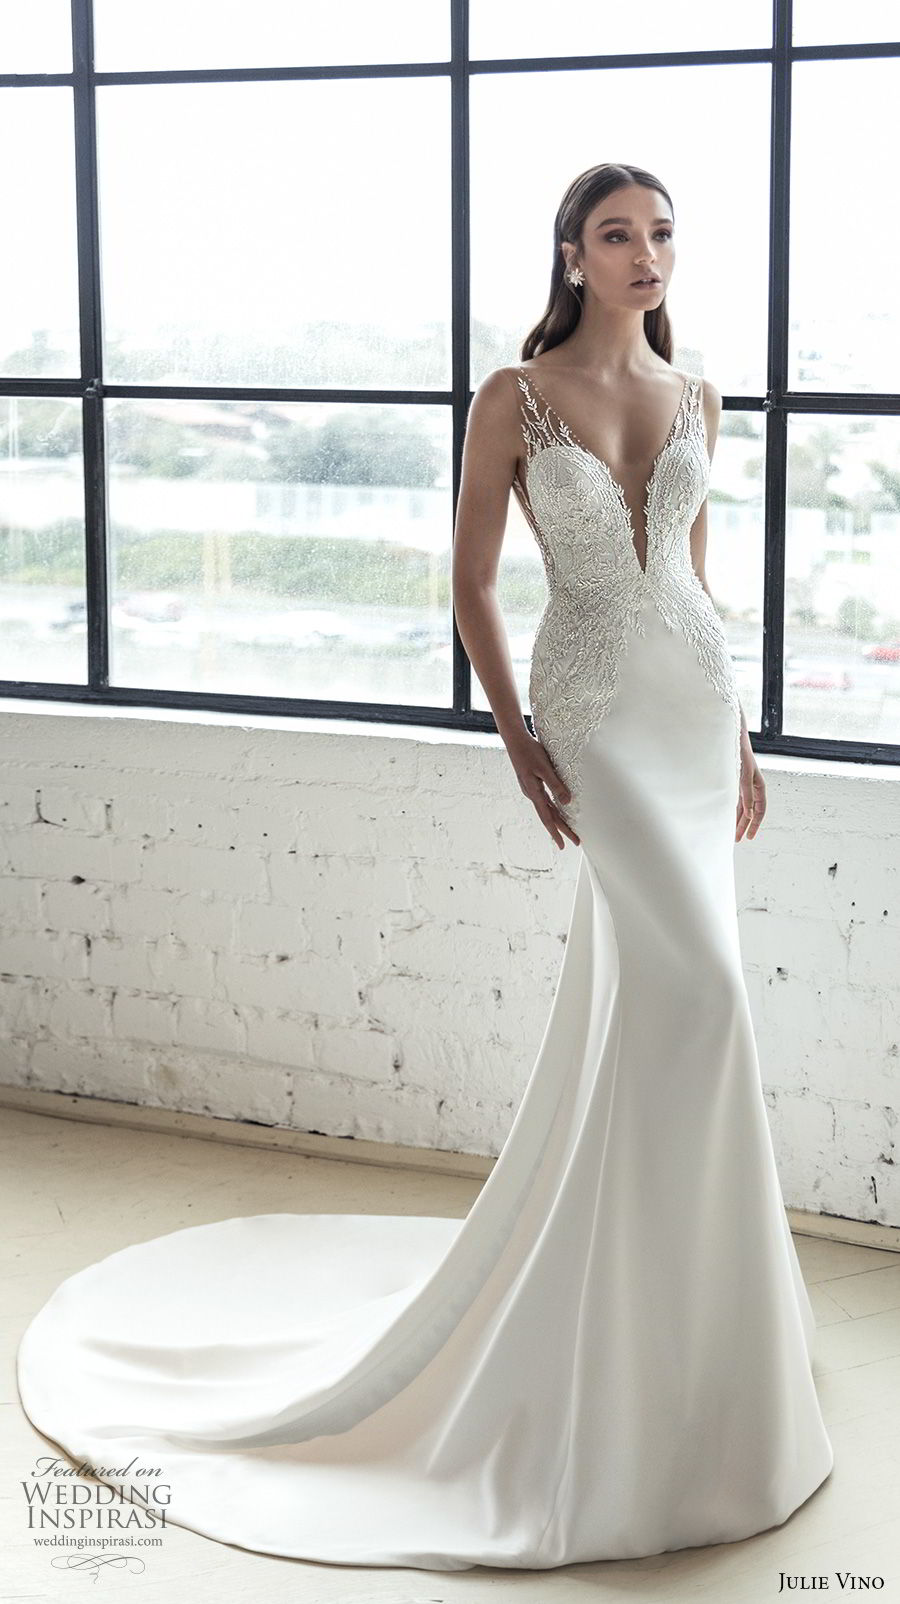 julie vino 2019 romanzo bridal sleeveless deep plunging sweetheart neckline heavily embellished bodice romantic fit and flare wedding dress low v back chapel train (8) mv